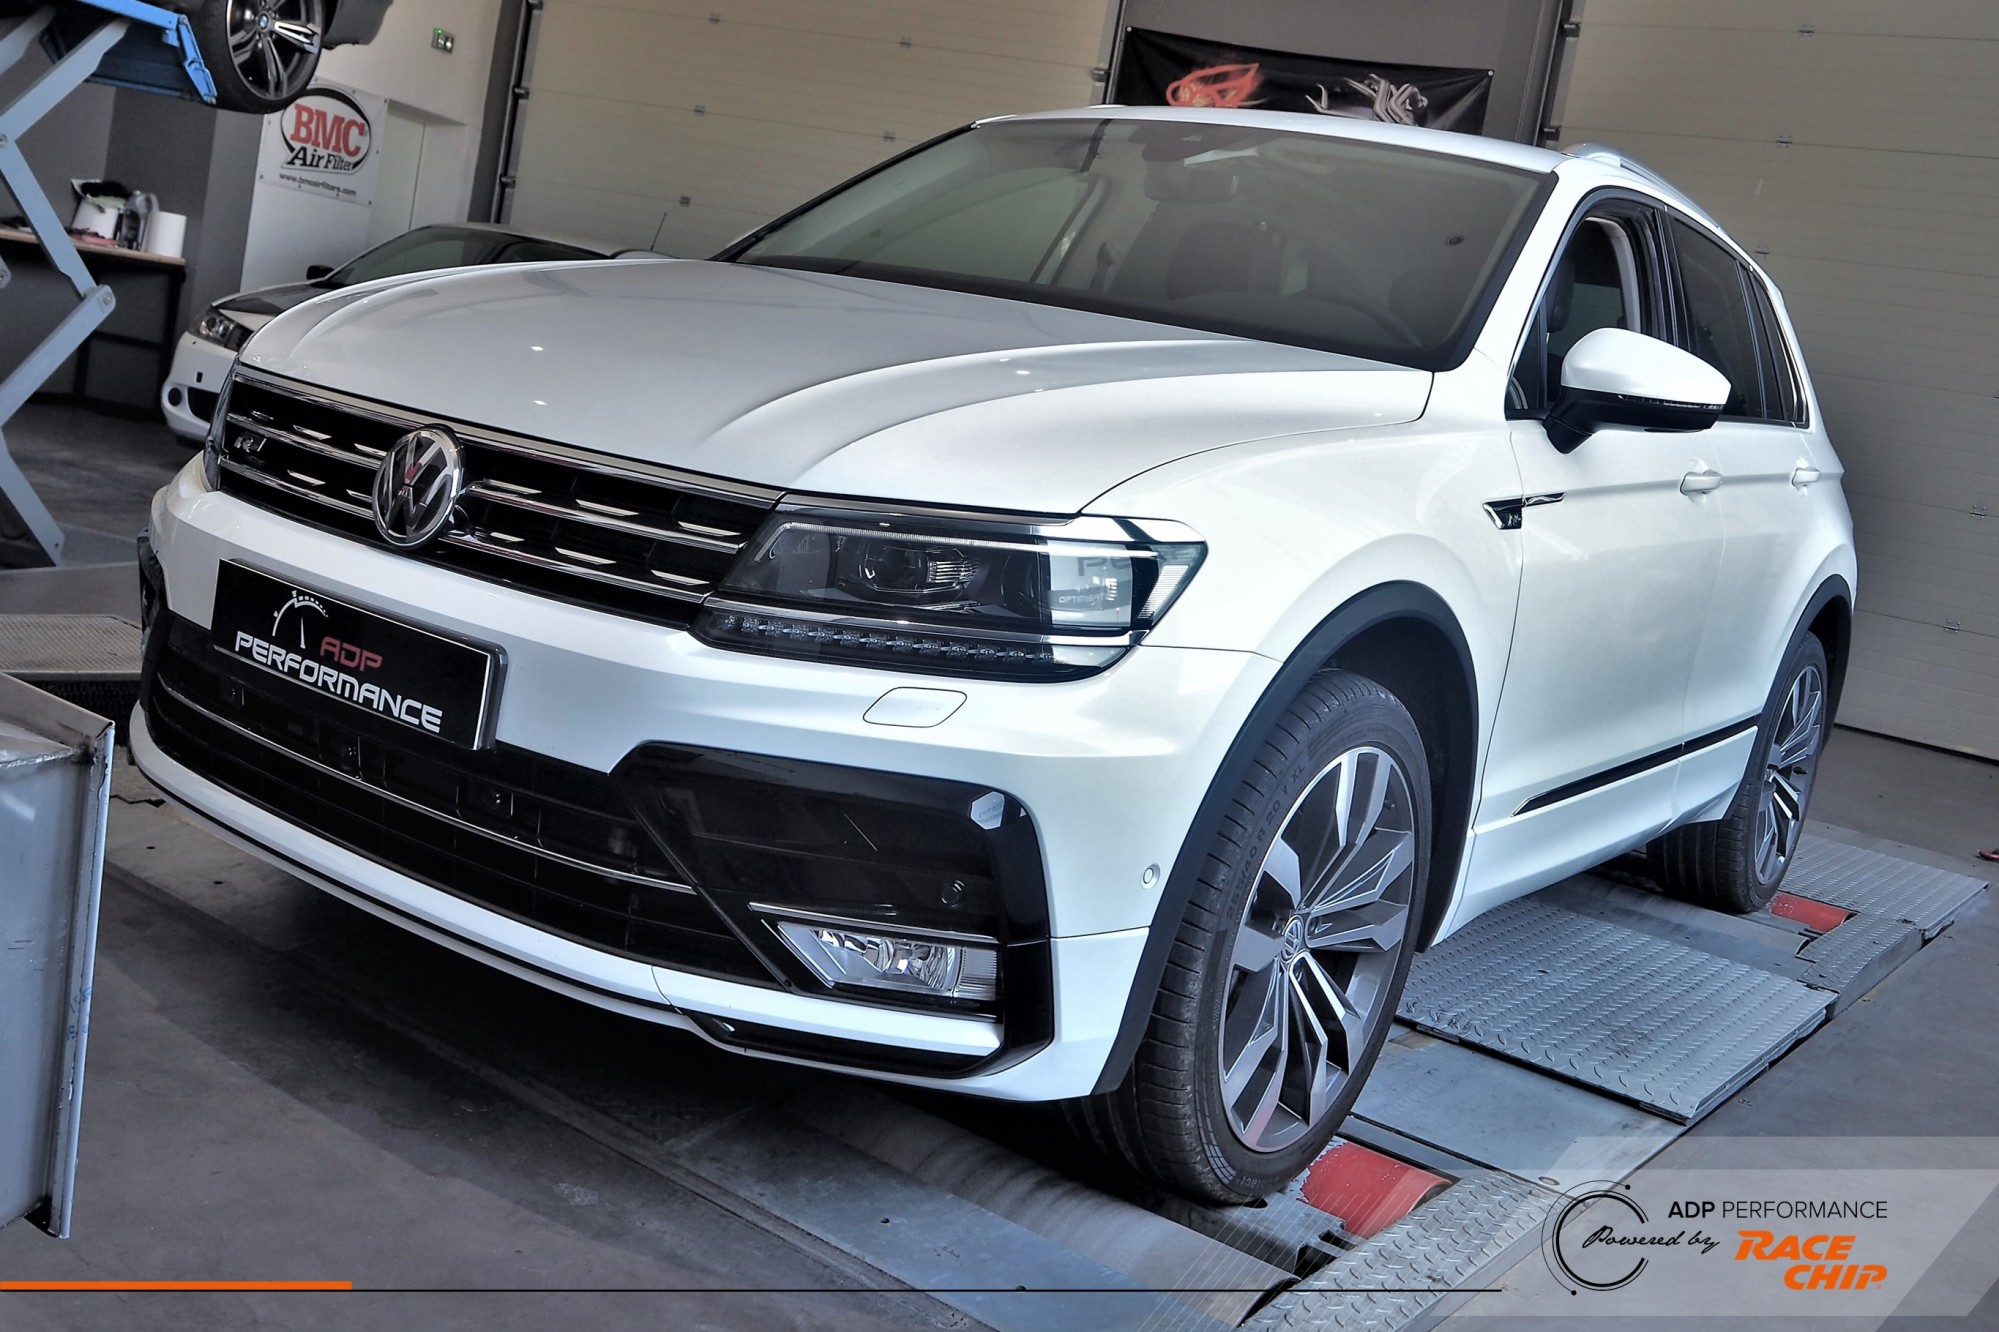 RaceChip Ultimate Salon de Provence - VW Tiguan 2.0 TDI Bi Turbo 240cv - ADP Performance